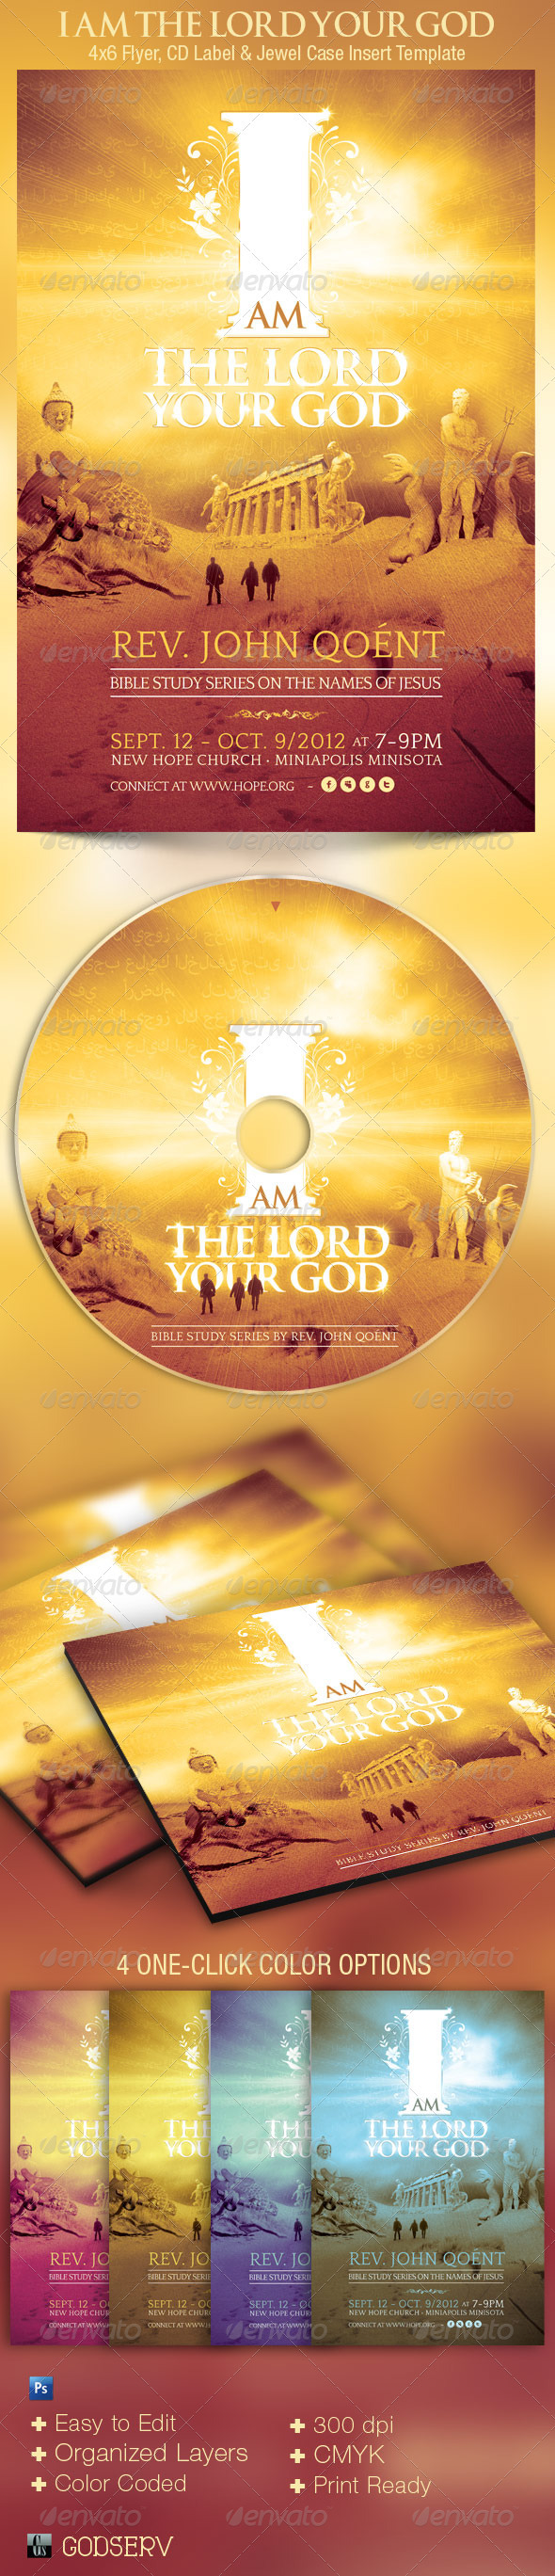 GraphicRiver I Am The Lord Your God Church Flyer and CD 2822919